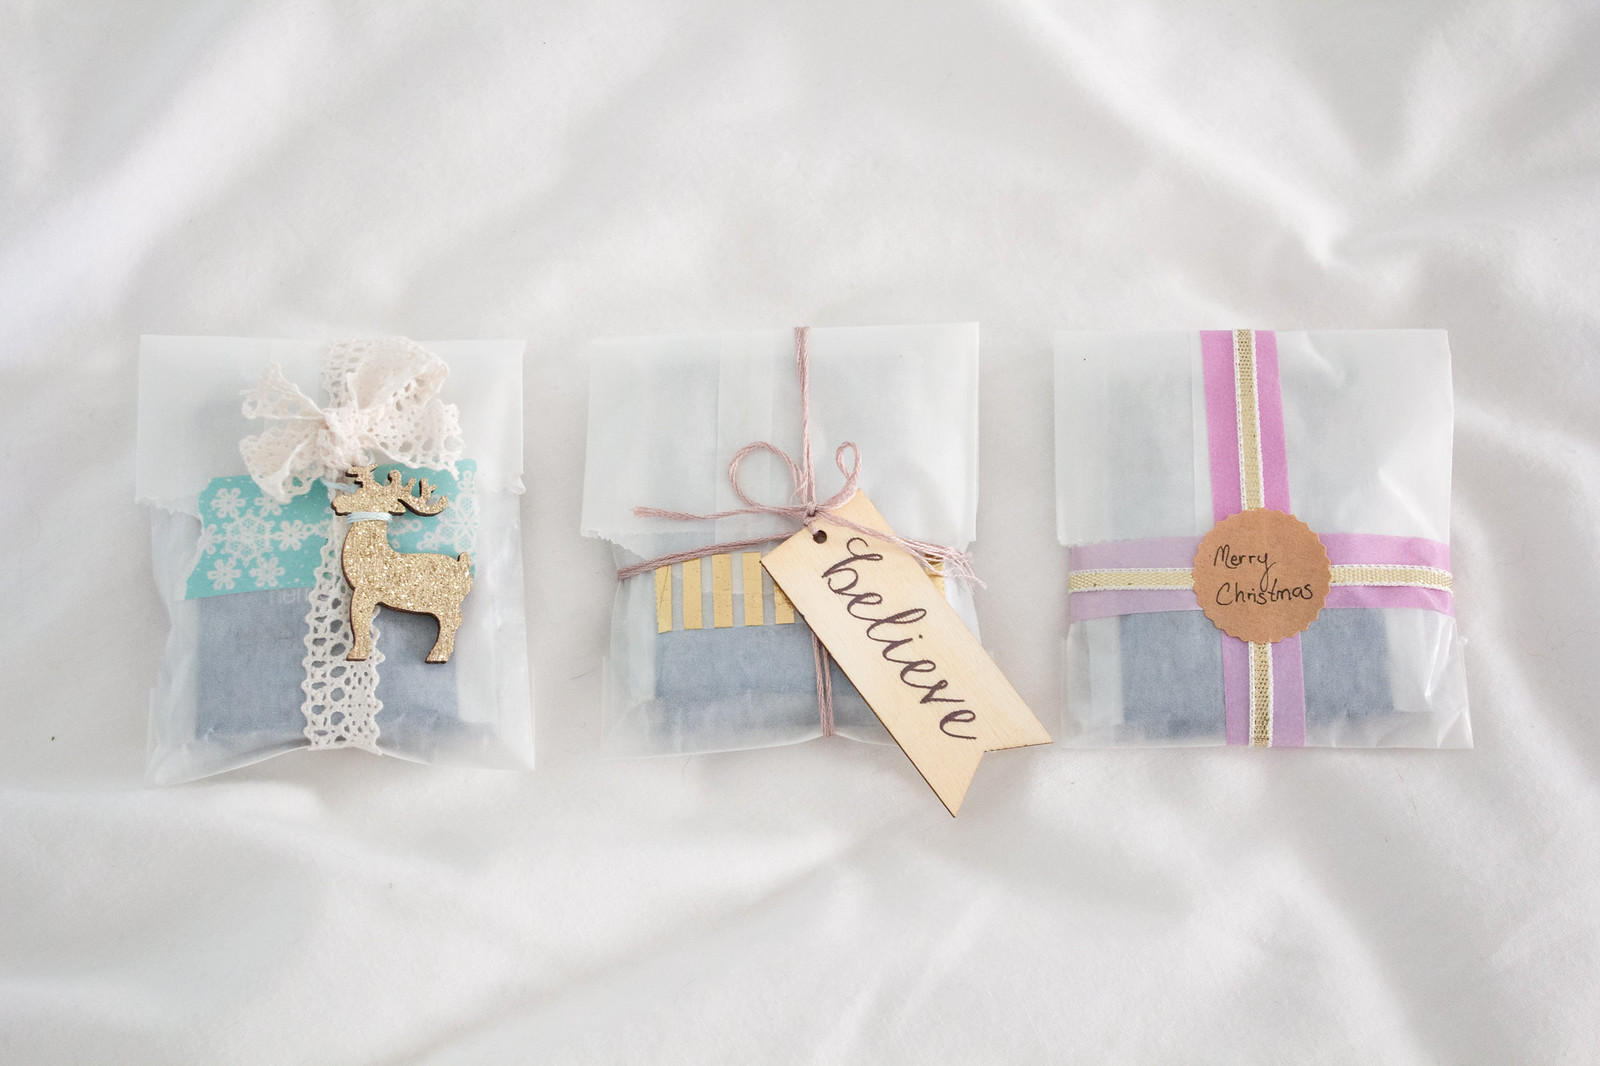 mini packages